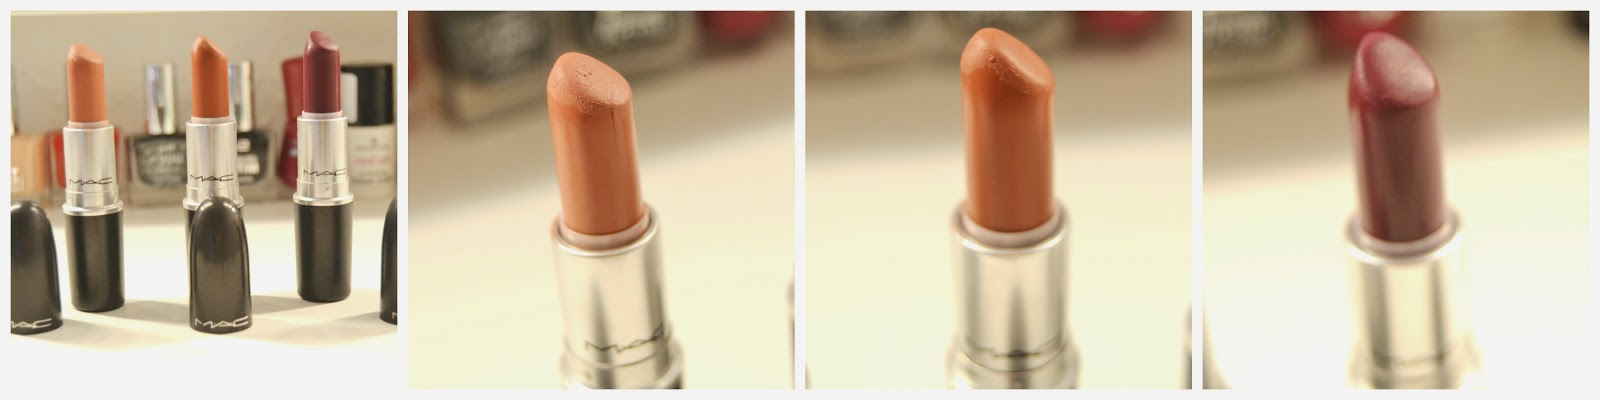 Mac Lipstick Matte Velvet Teddy Taupe Rebel Swatch